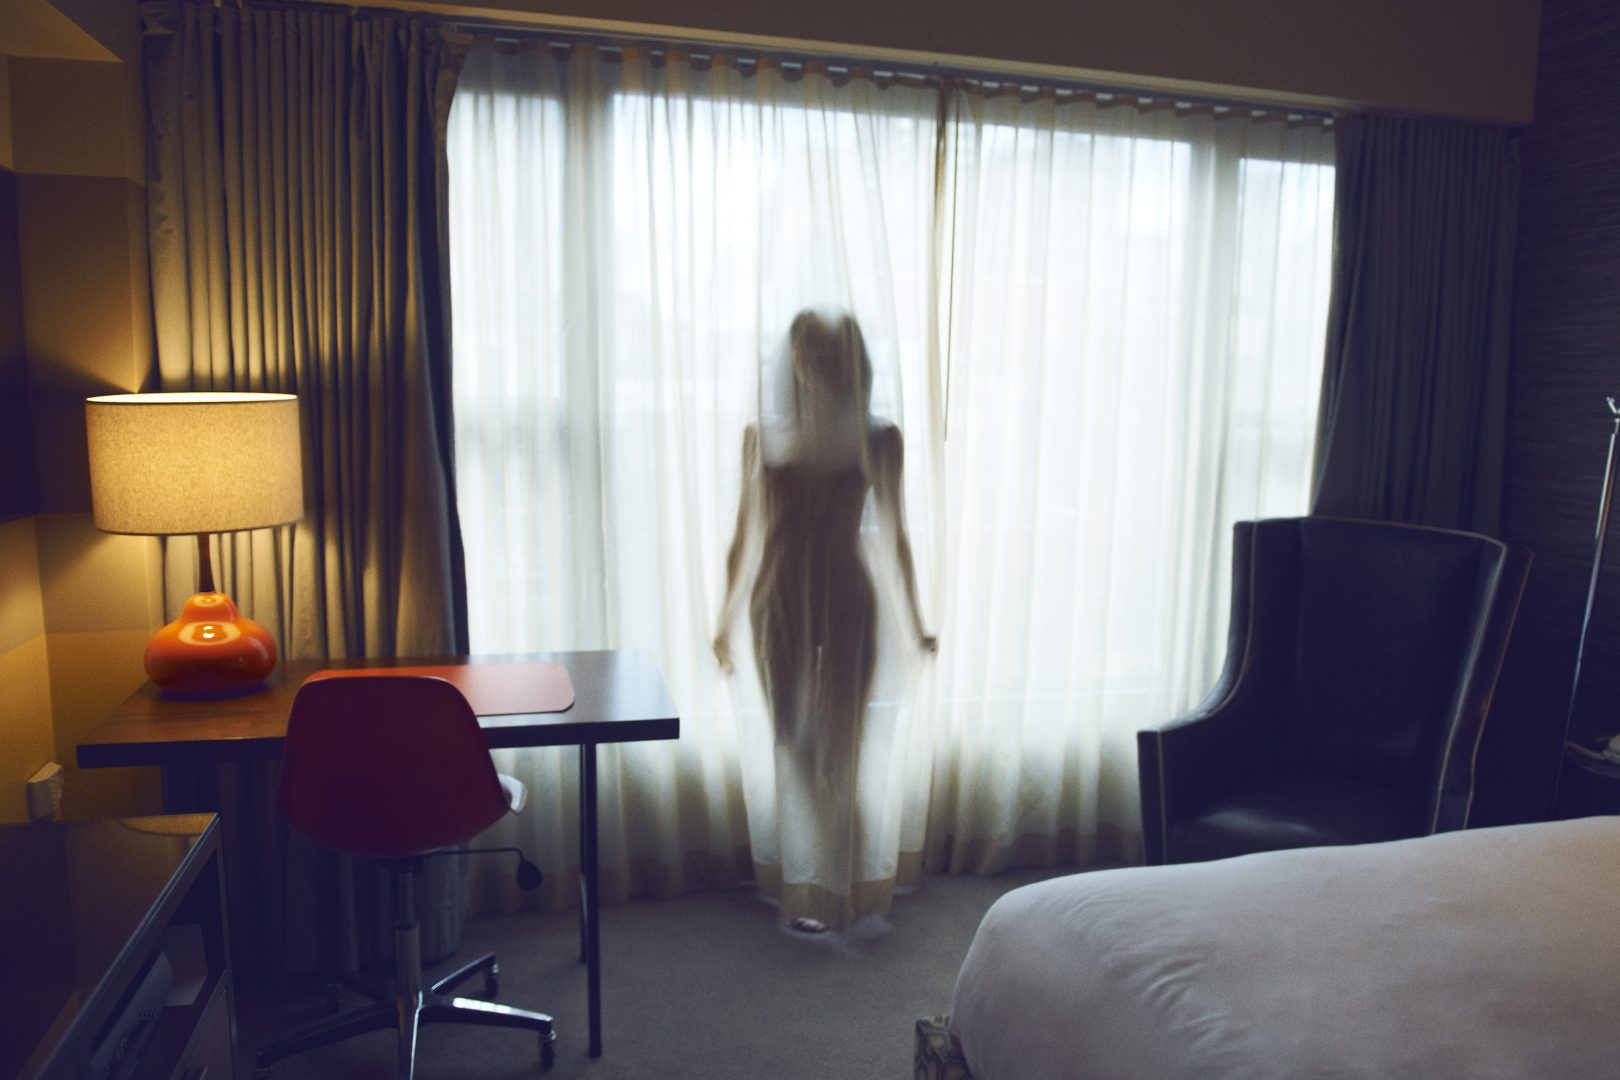 Naked girl behind a curtain in hotel room by Stefan Rappo